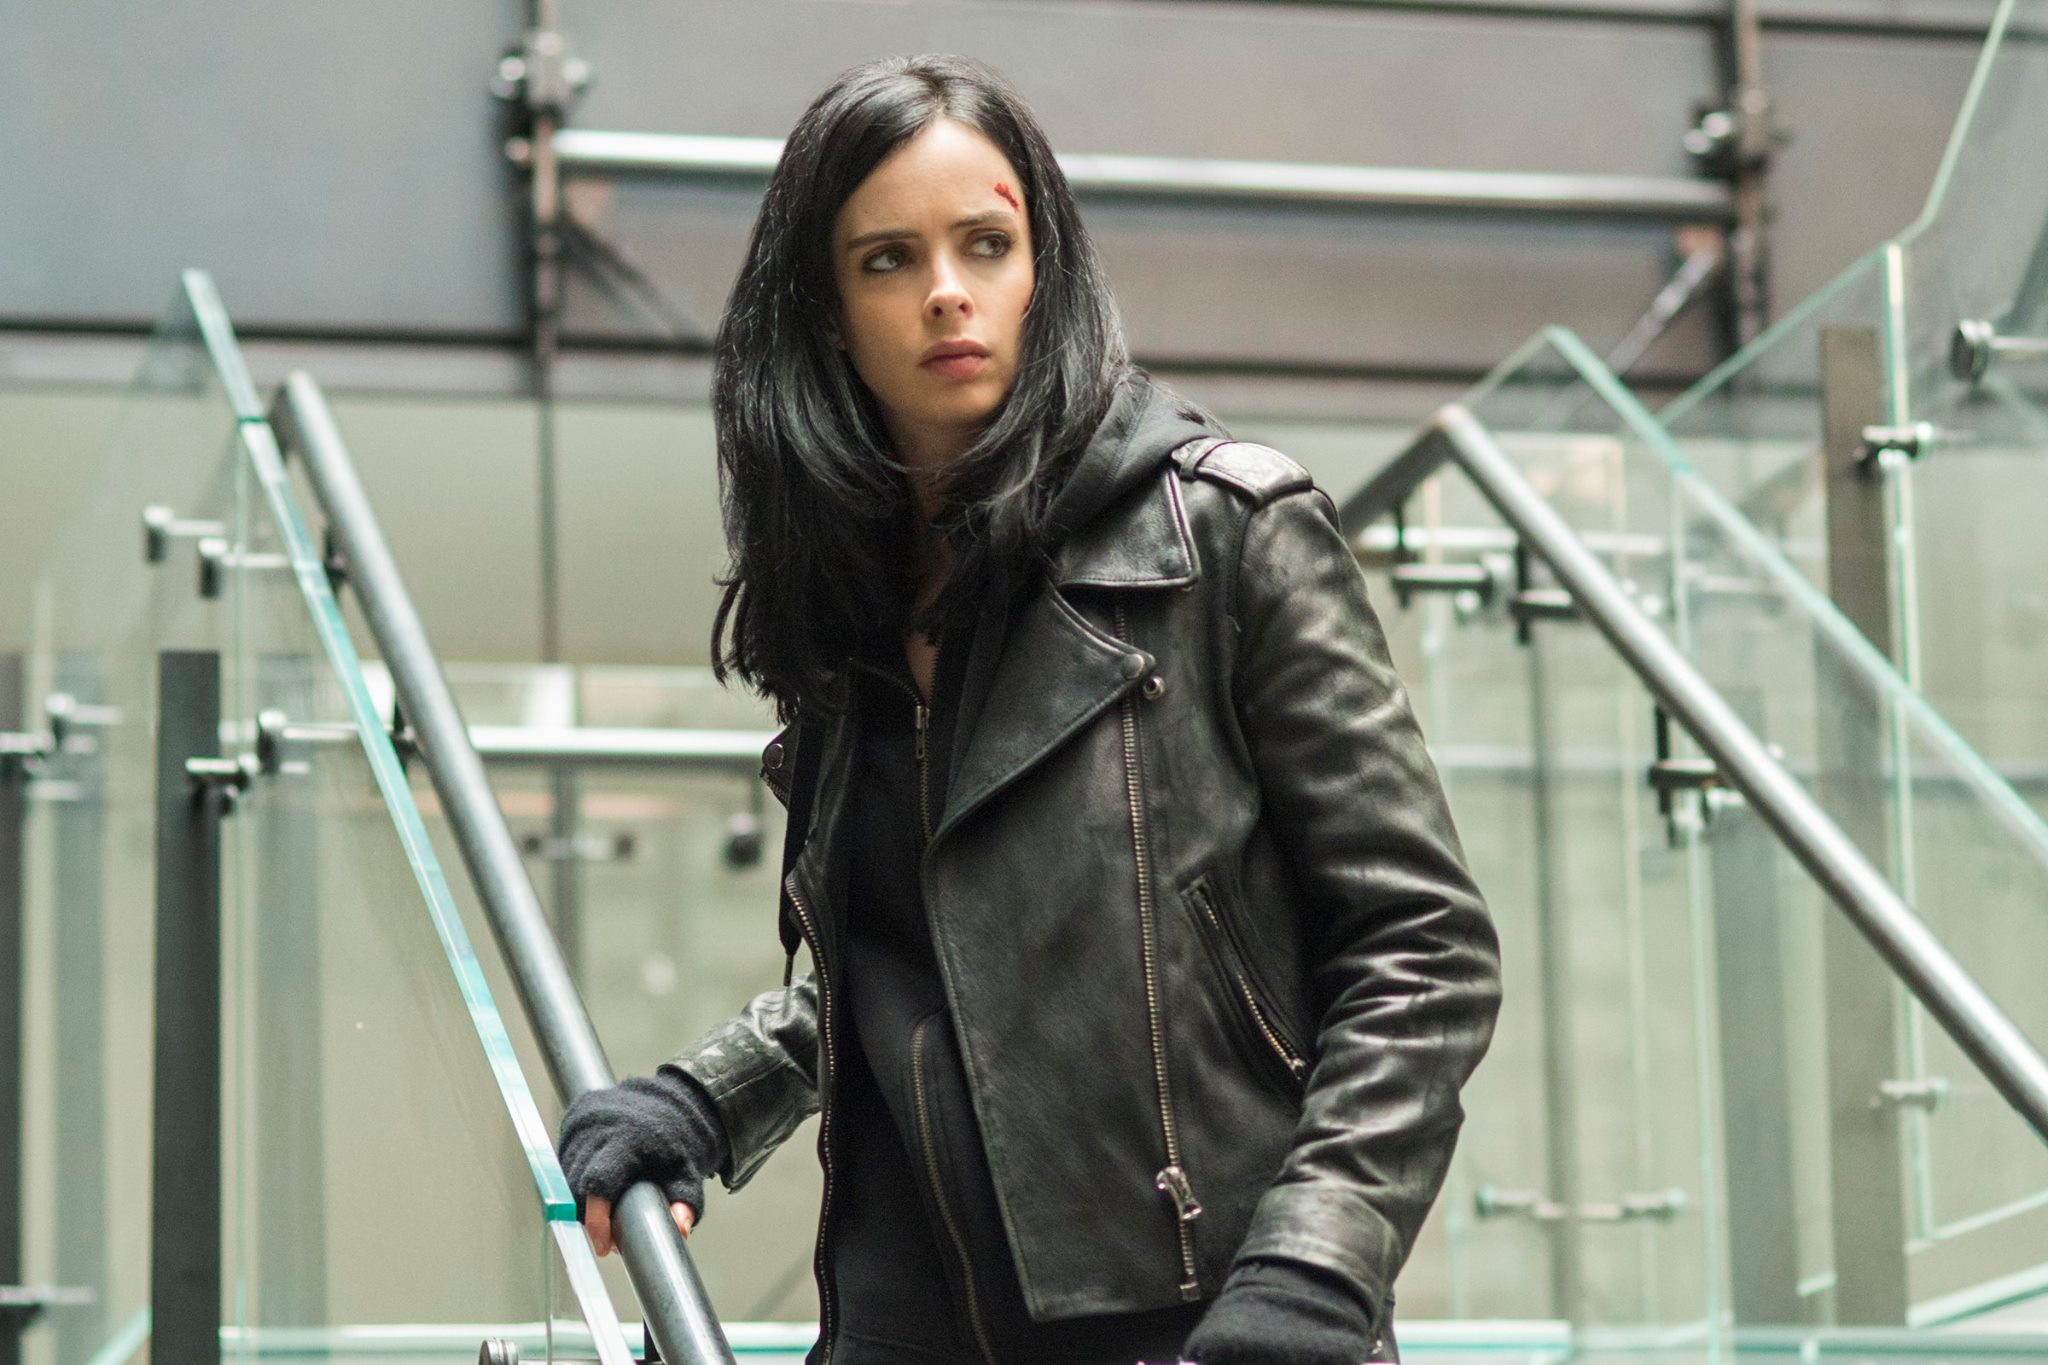 Krysten-Ritter-as-Jessica-Jones-in-Jessica-Jones